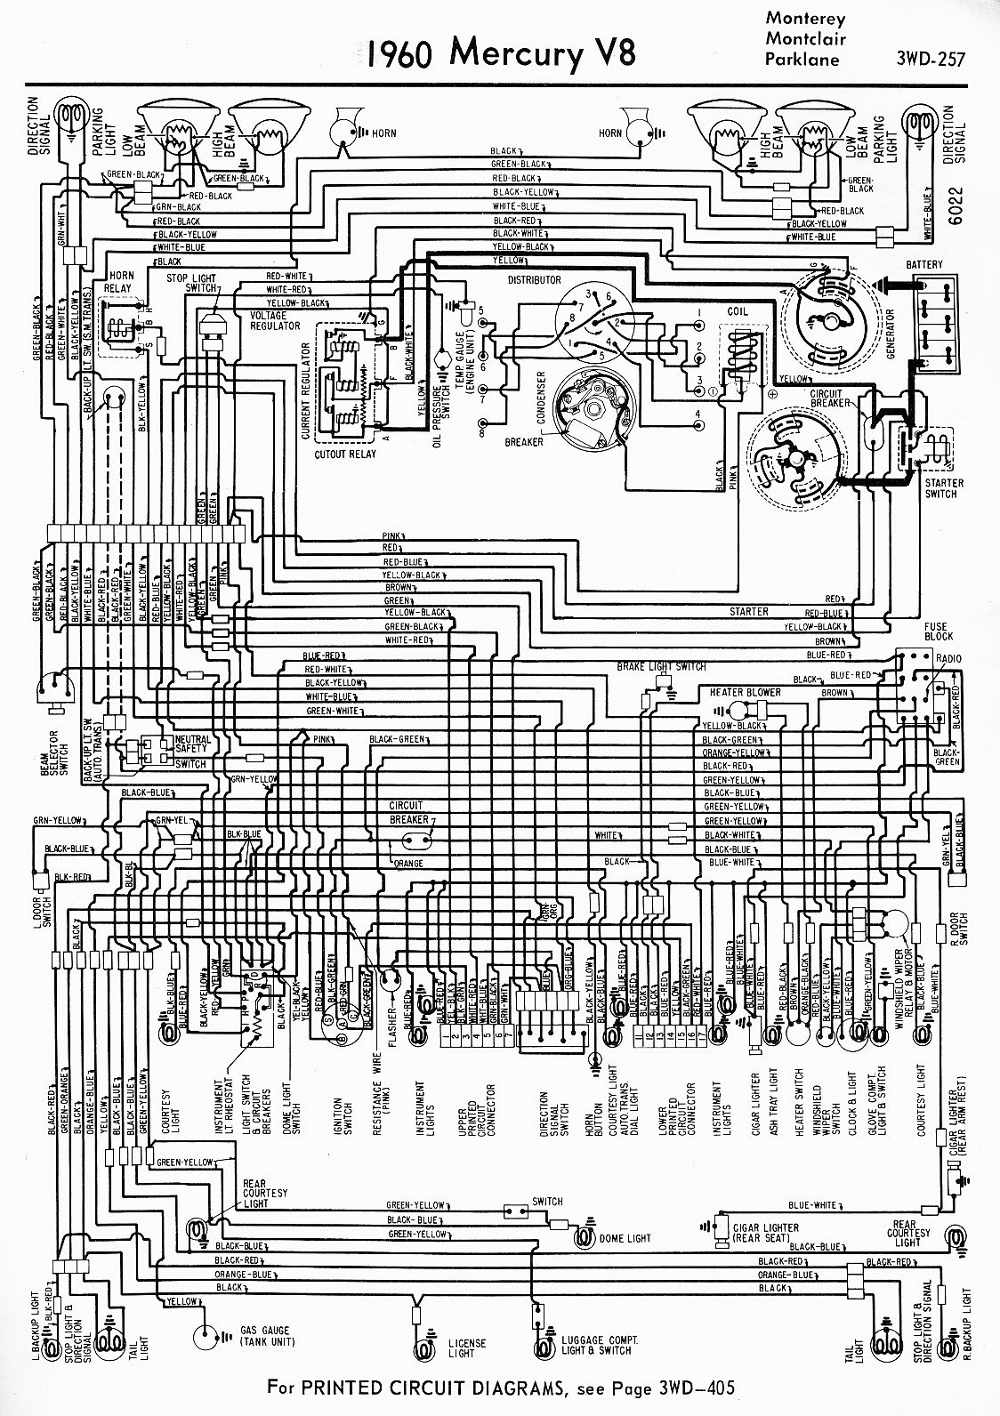 1955 Ford Wiring Schematic Electrical Diagram Schematics 1954 Buick For Lights Diagrams Ignition Switch Mercury